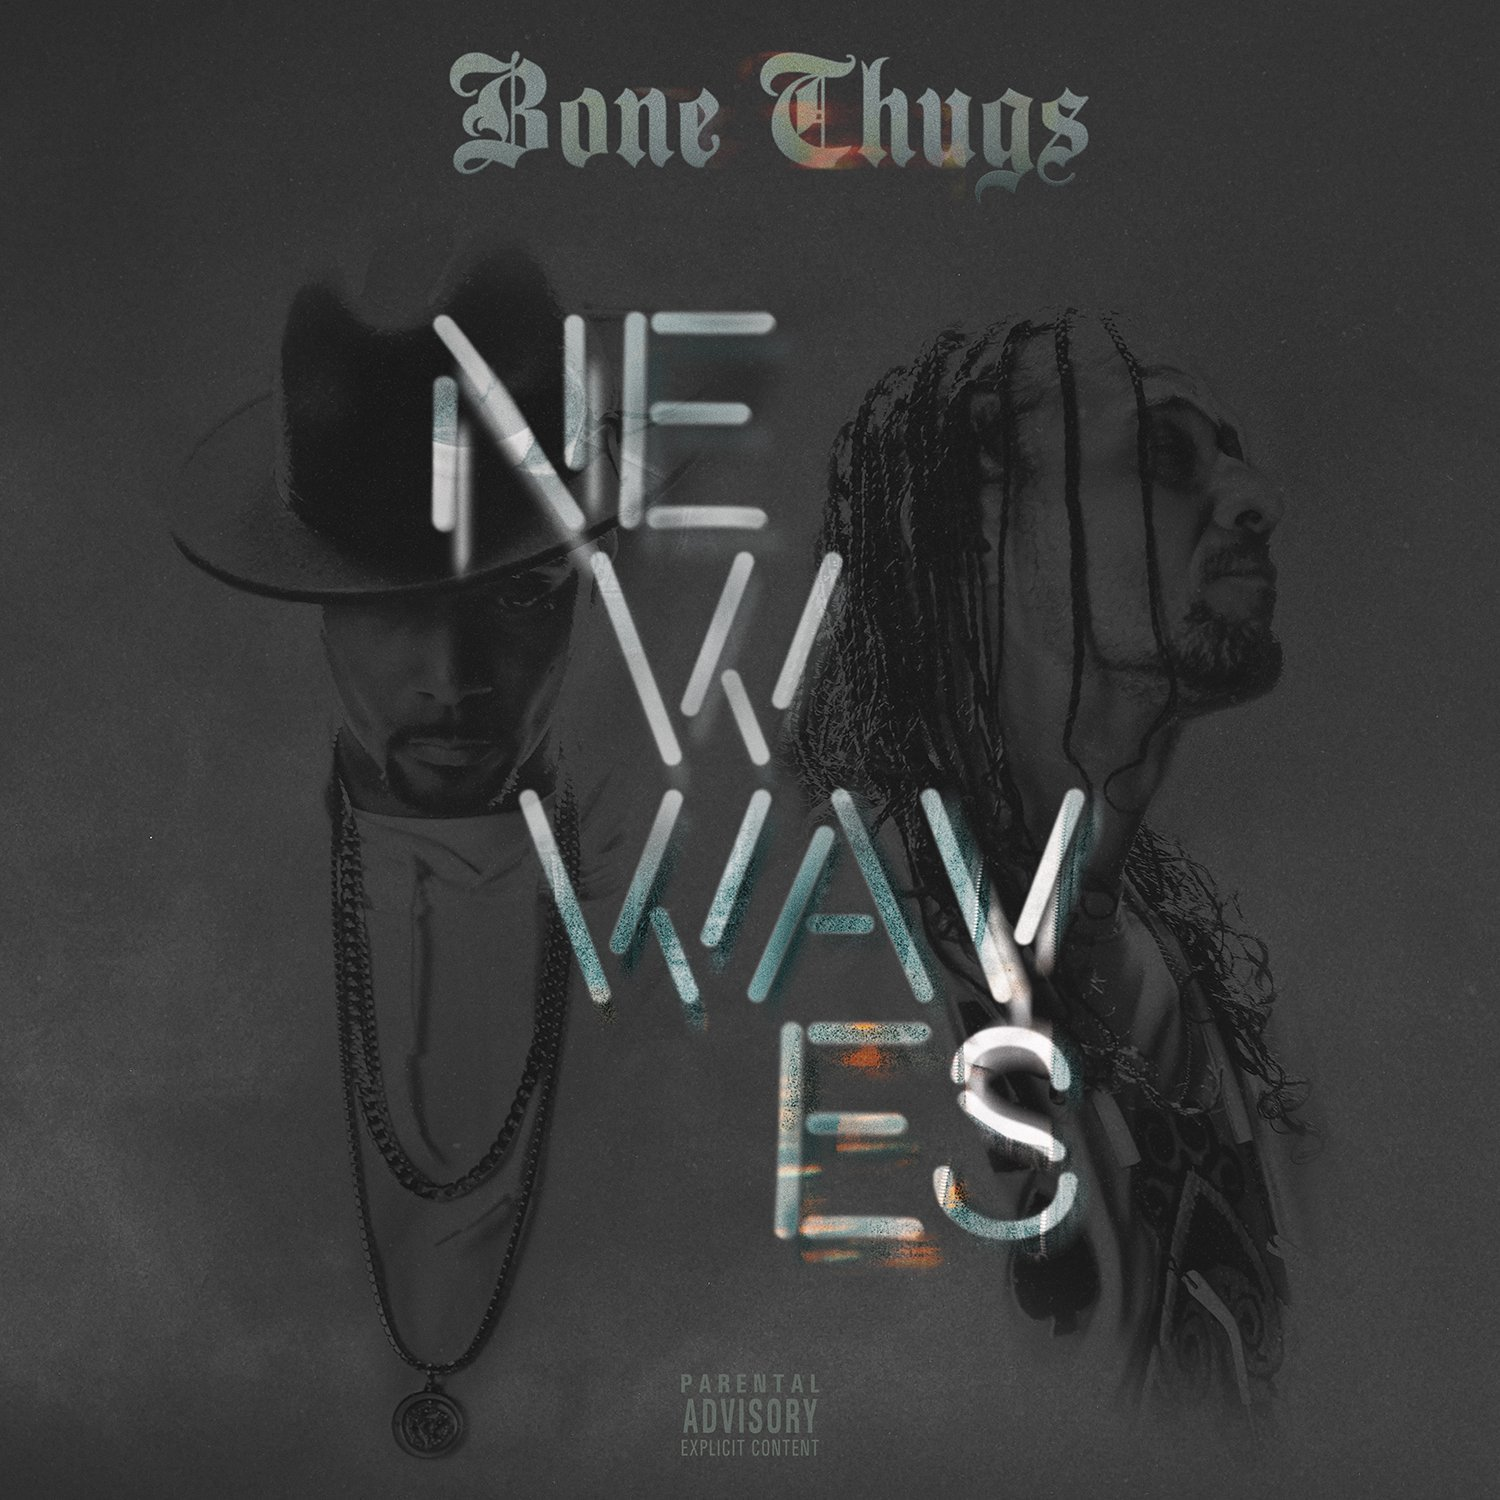 Bone Thugs - New Waves